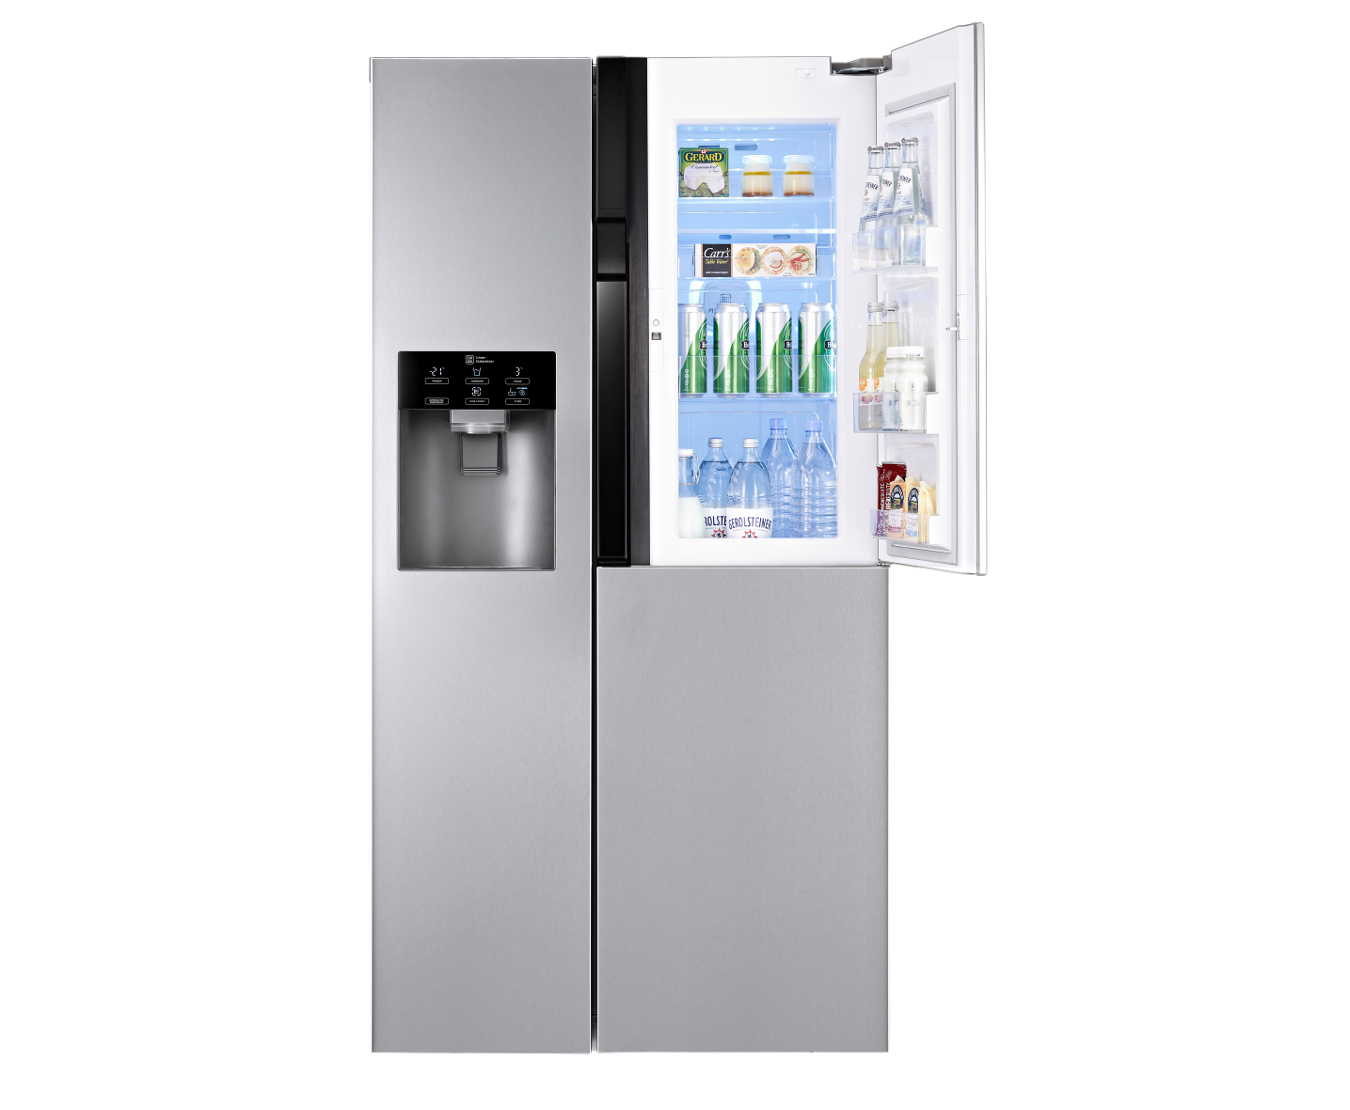 Combina frigorifica Side-By-Side LG GS9366PZYZD 614 litri, Total NO FROST, Door-in-Door, clasa A++, dispenser apa si gheata, Compresor Inverter